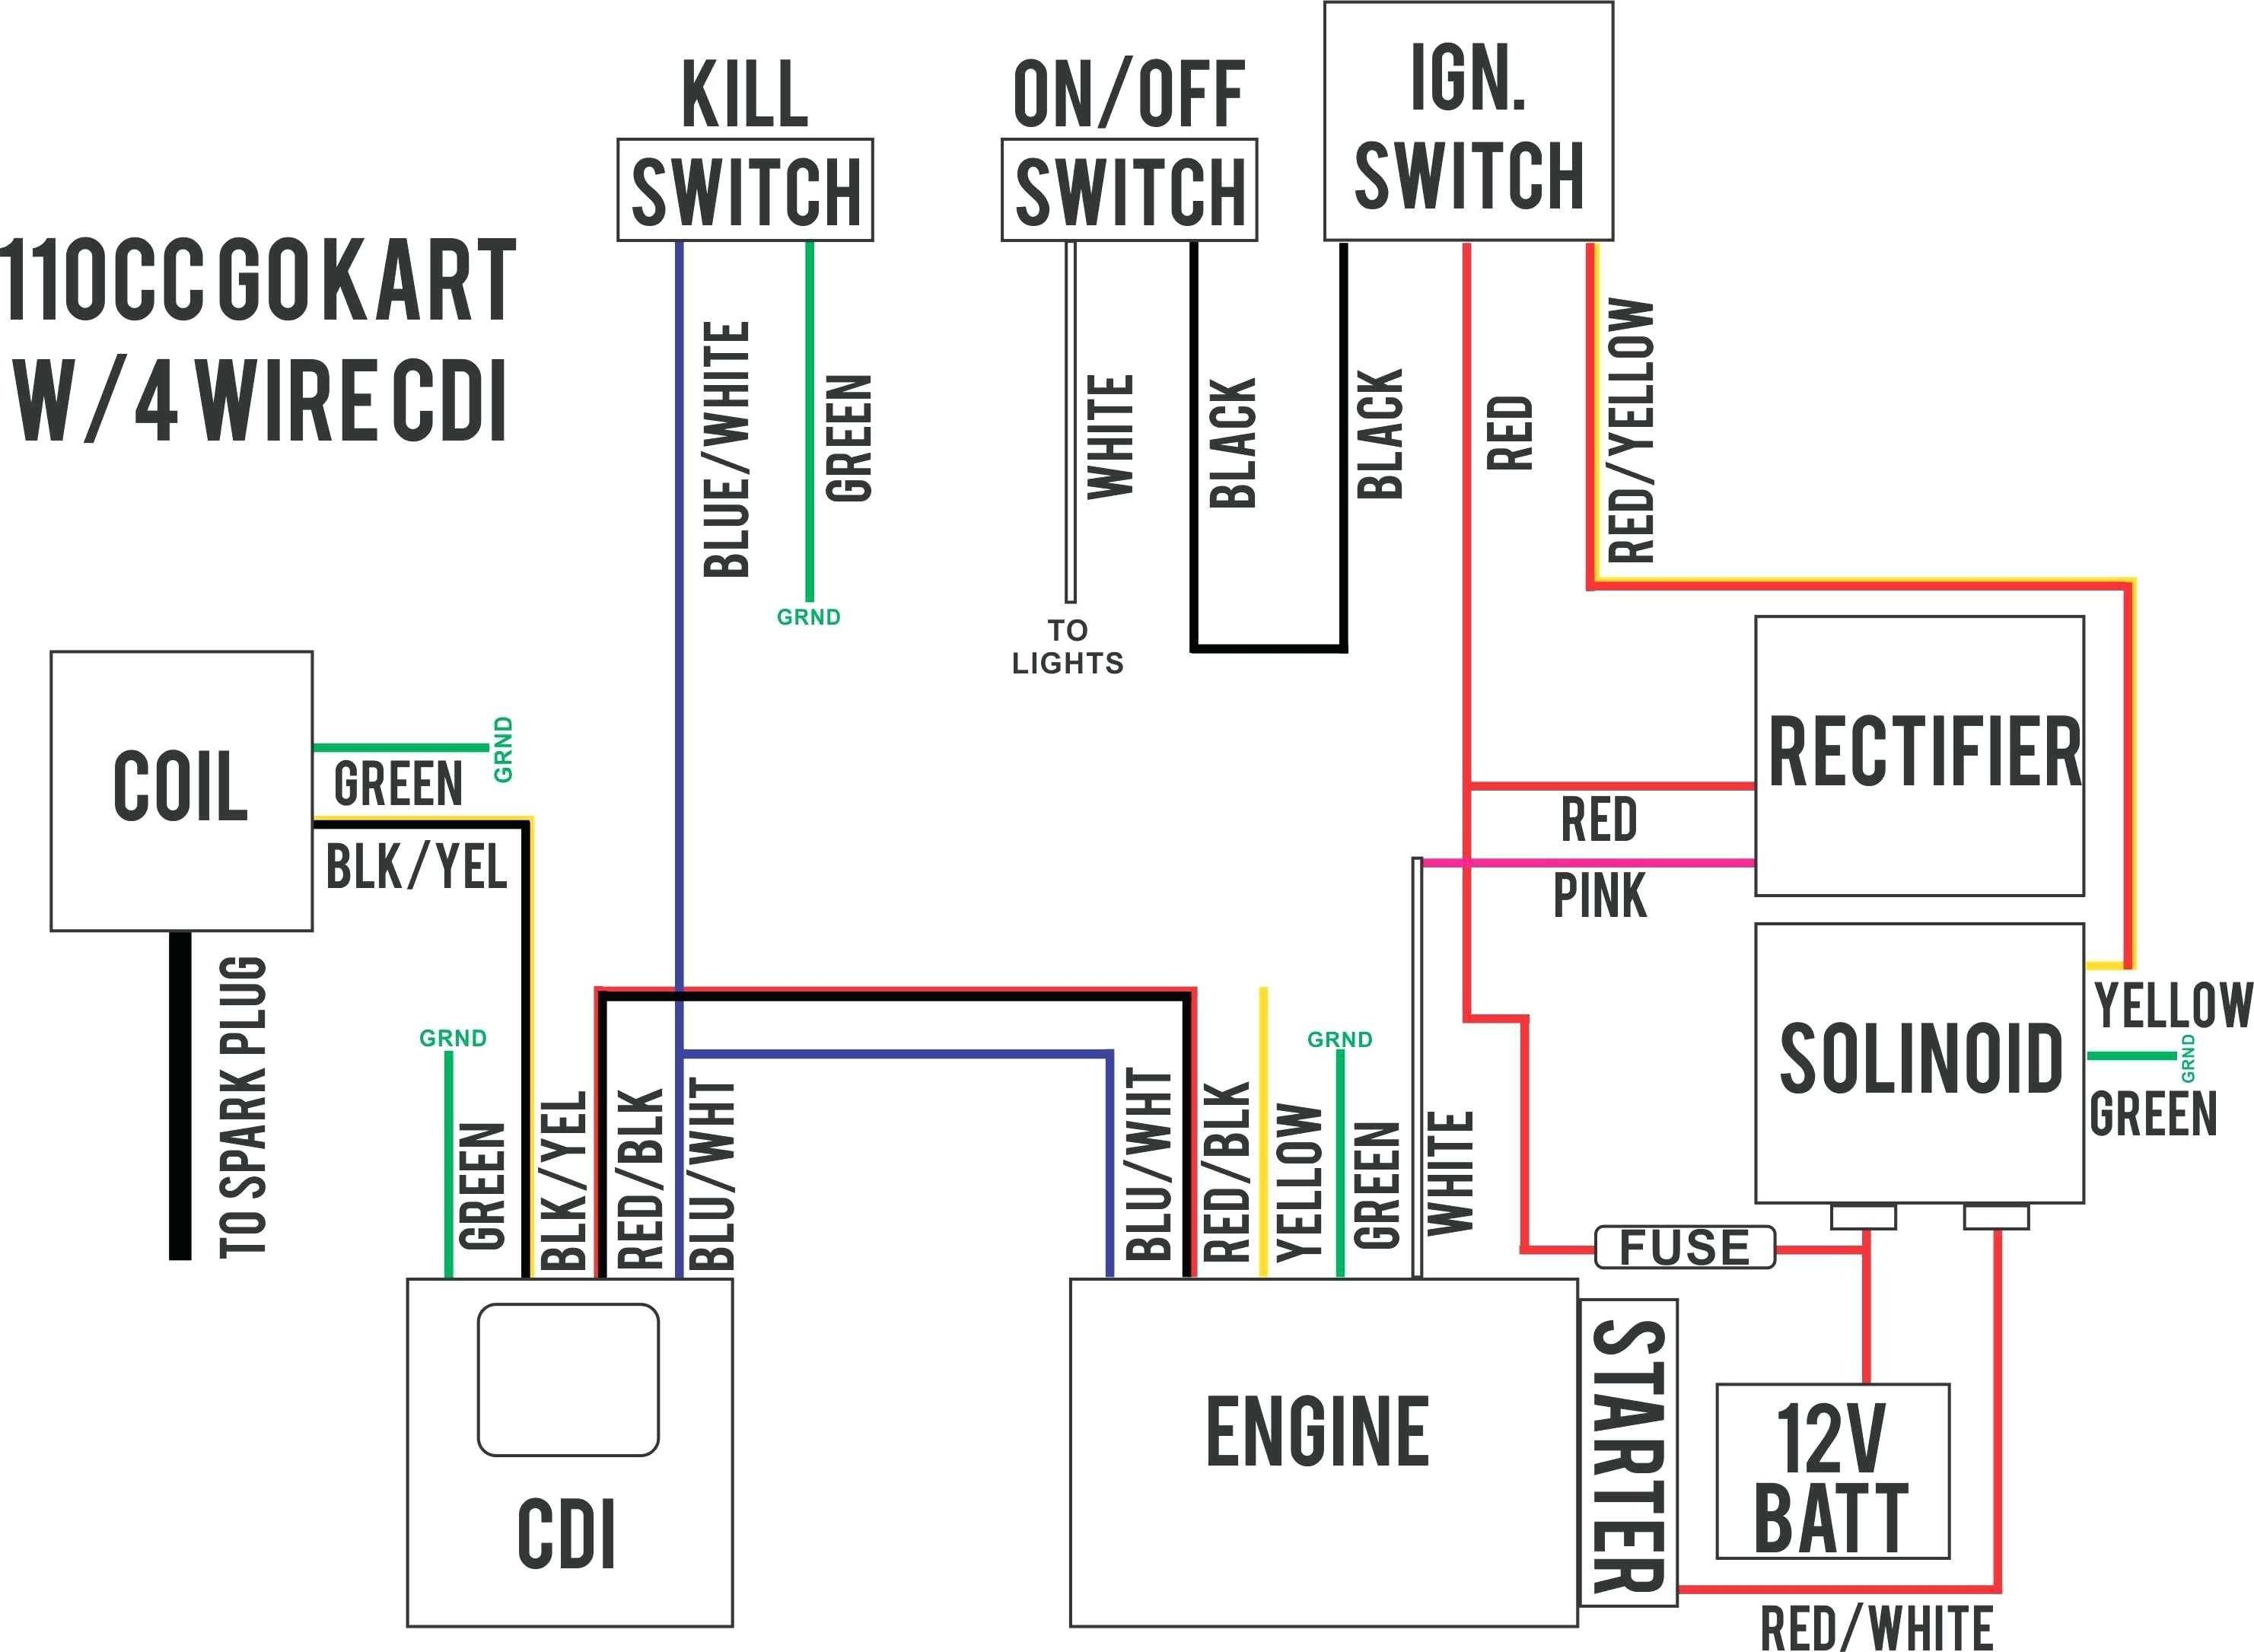 Chinese Cdi Box Wiring DIY Wiring Diagrams • | Electrical wiring diagram,  Motorcycle wiring, Electrical diagram | Red Box Wiring Diagram |  | Pinterest